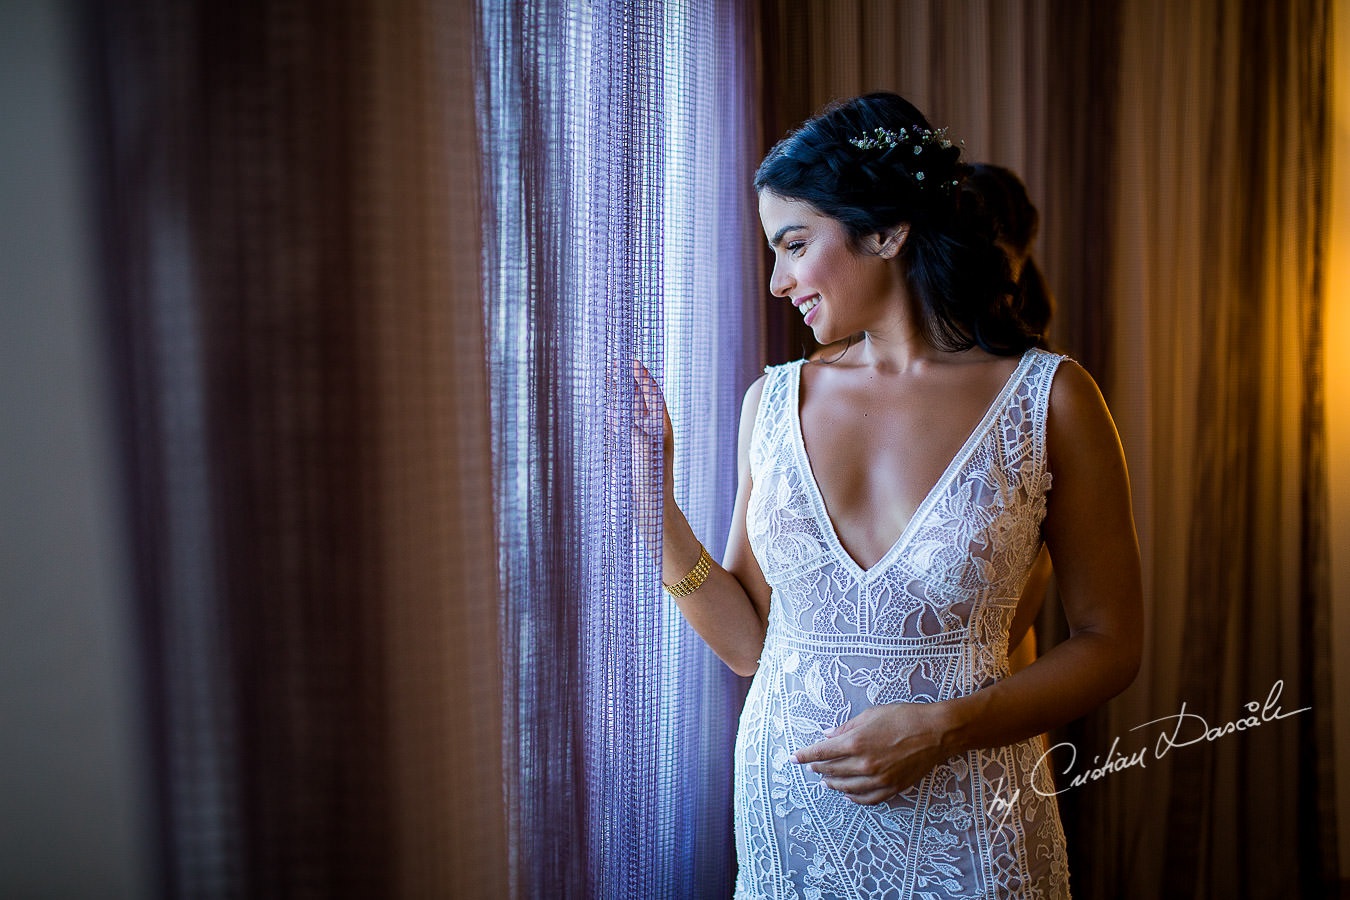 Smiling bridal portrait captured during a wedding photography at the Lighthouse Limassol, by Cyprus Photographer Cristian Dascalu.